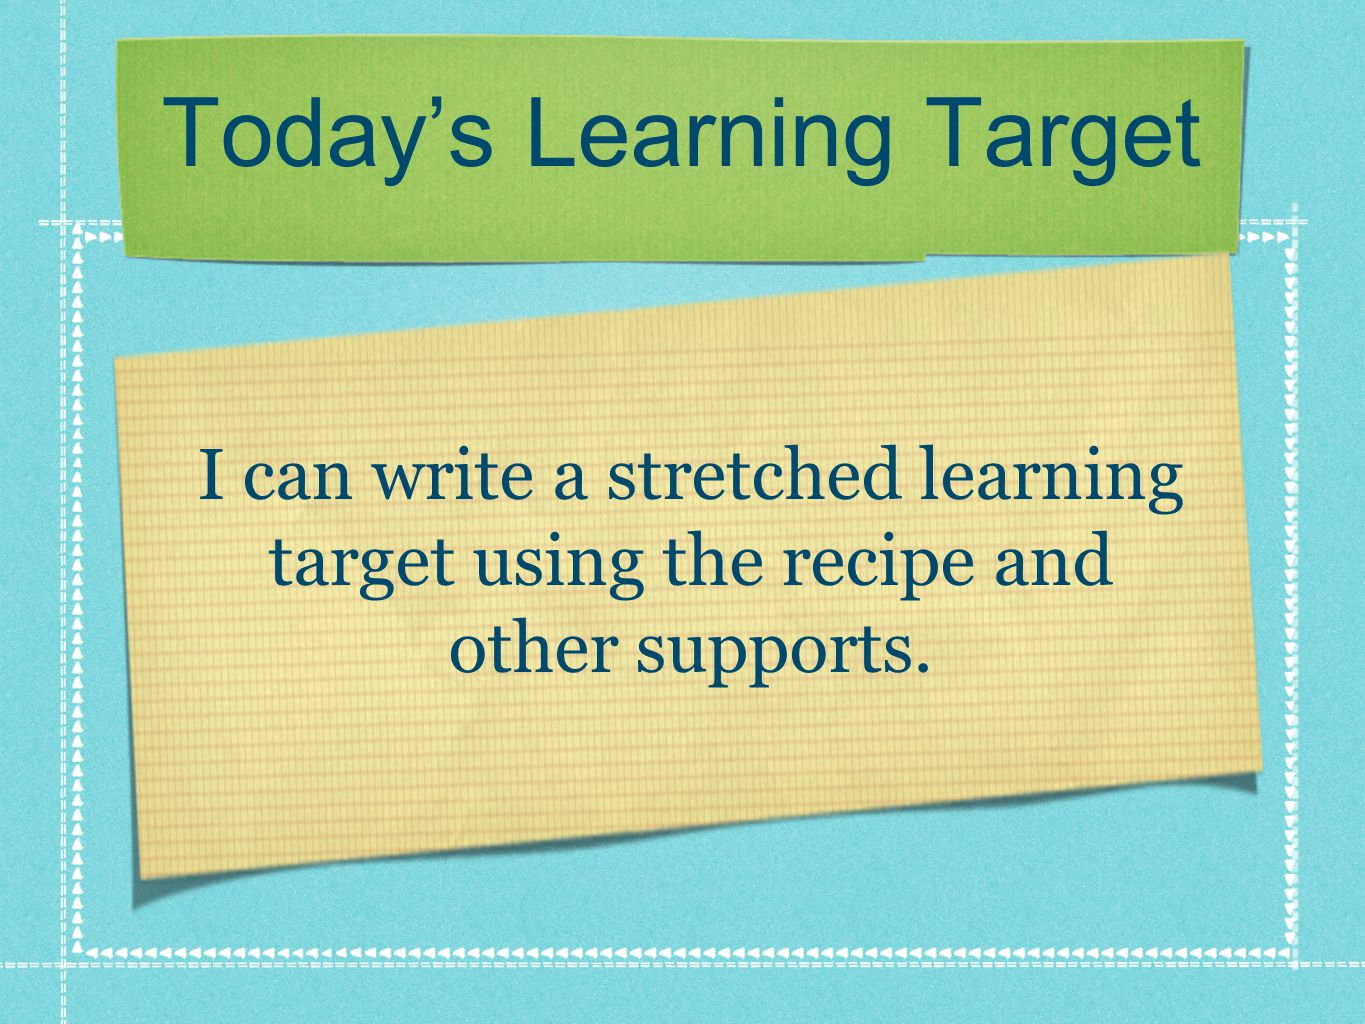 Today's Learning Target I can write a stretched learning target using the recipe and other supports.